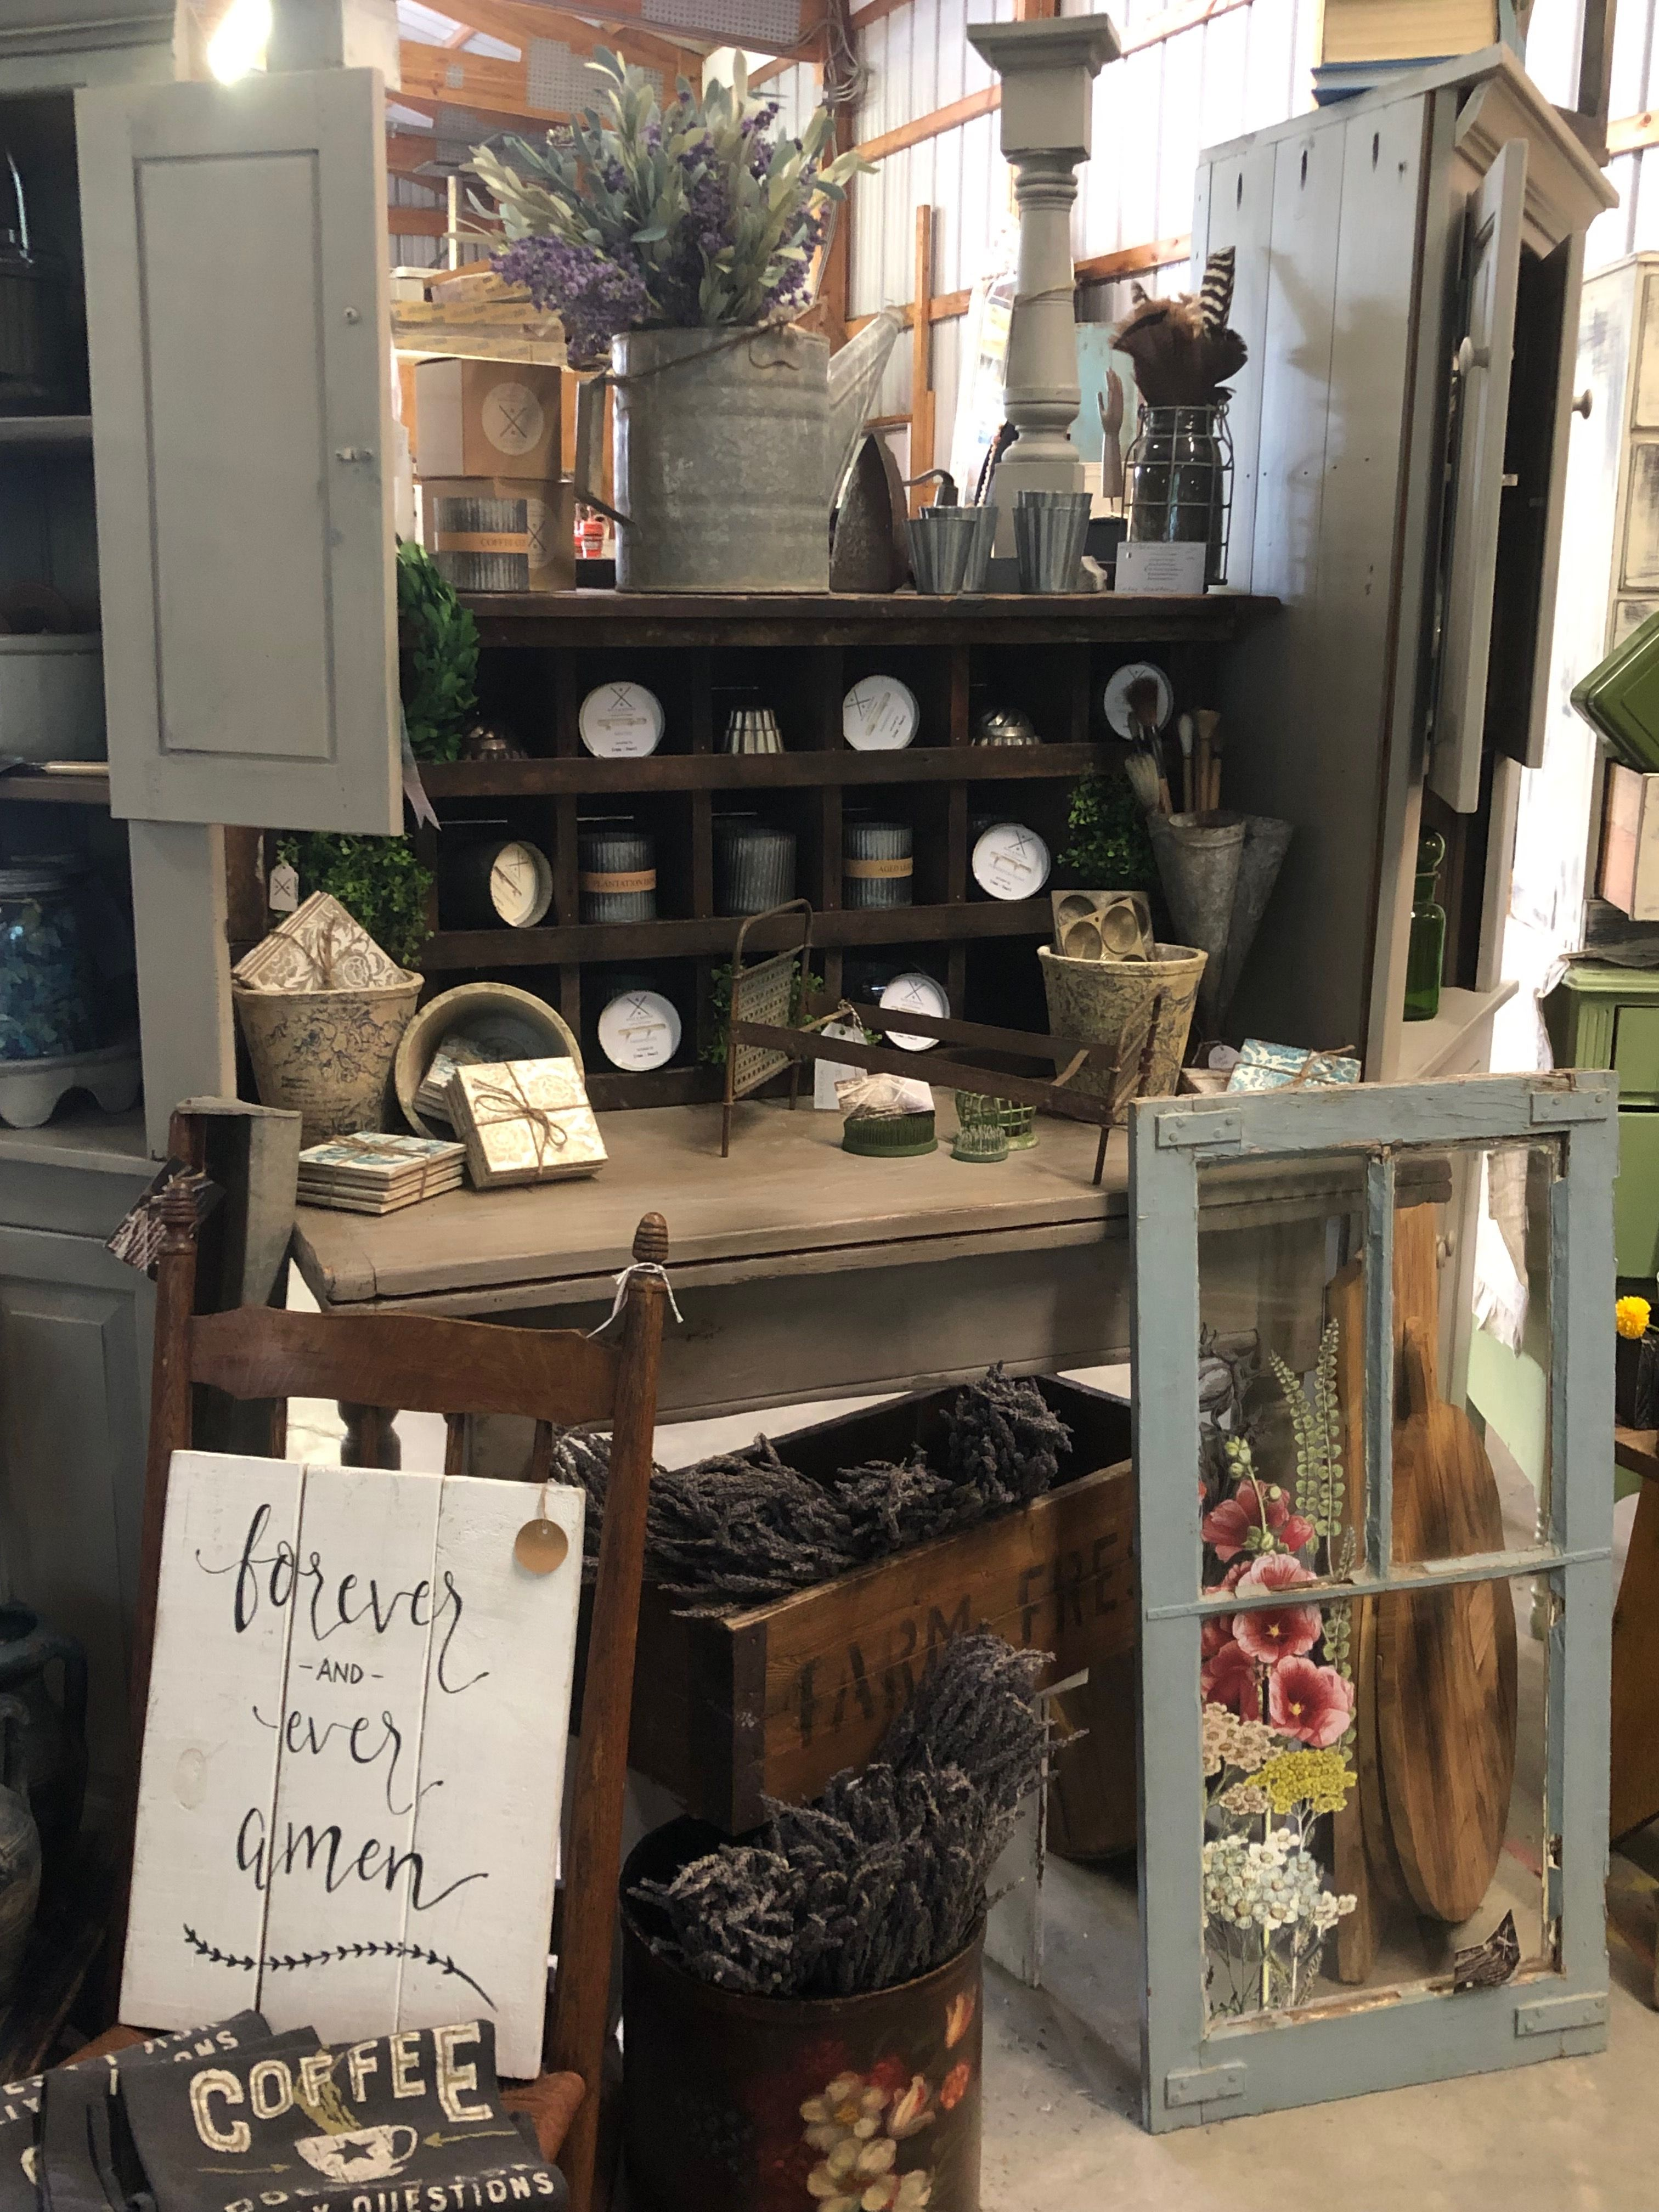 Rust And Refind Artisan Market Display At The Lucketts Spring